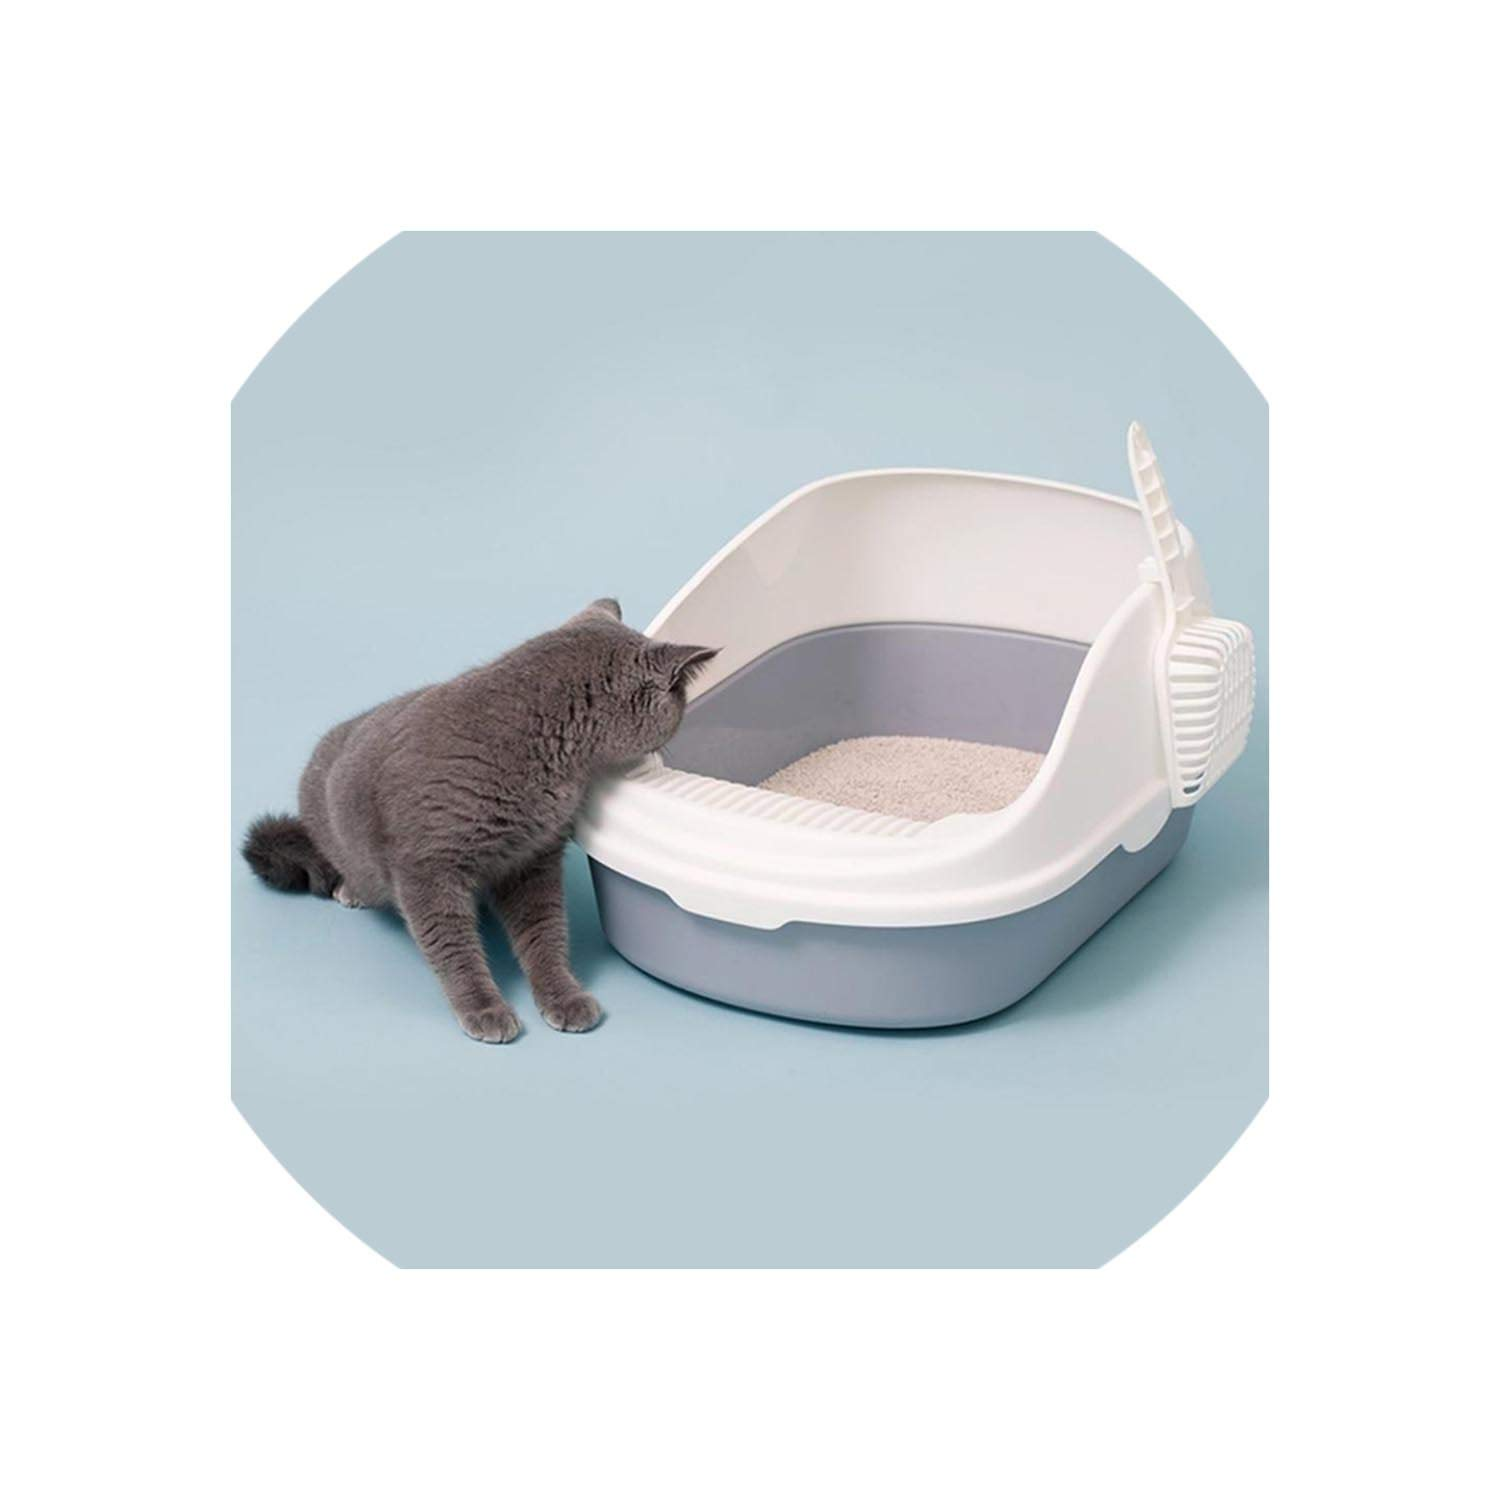 Portable Cat Litter Bowl Toilet Bedpans Large Middle Size Cat Excrement Training Sand Litter Box with Scoop for Pets Kitty,Crystal Cream,Average Code by HEARTLIFE Cat Litter Box